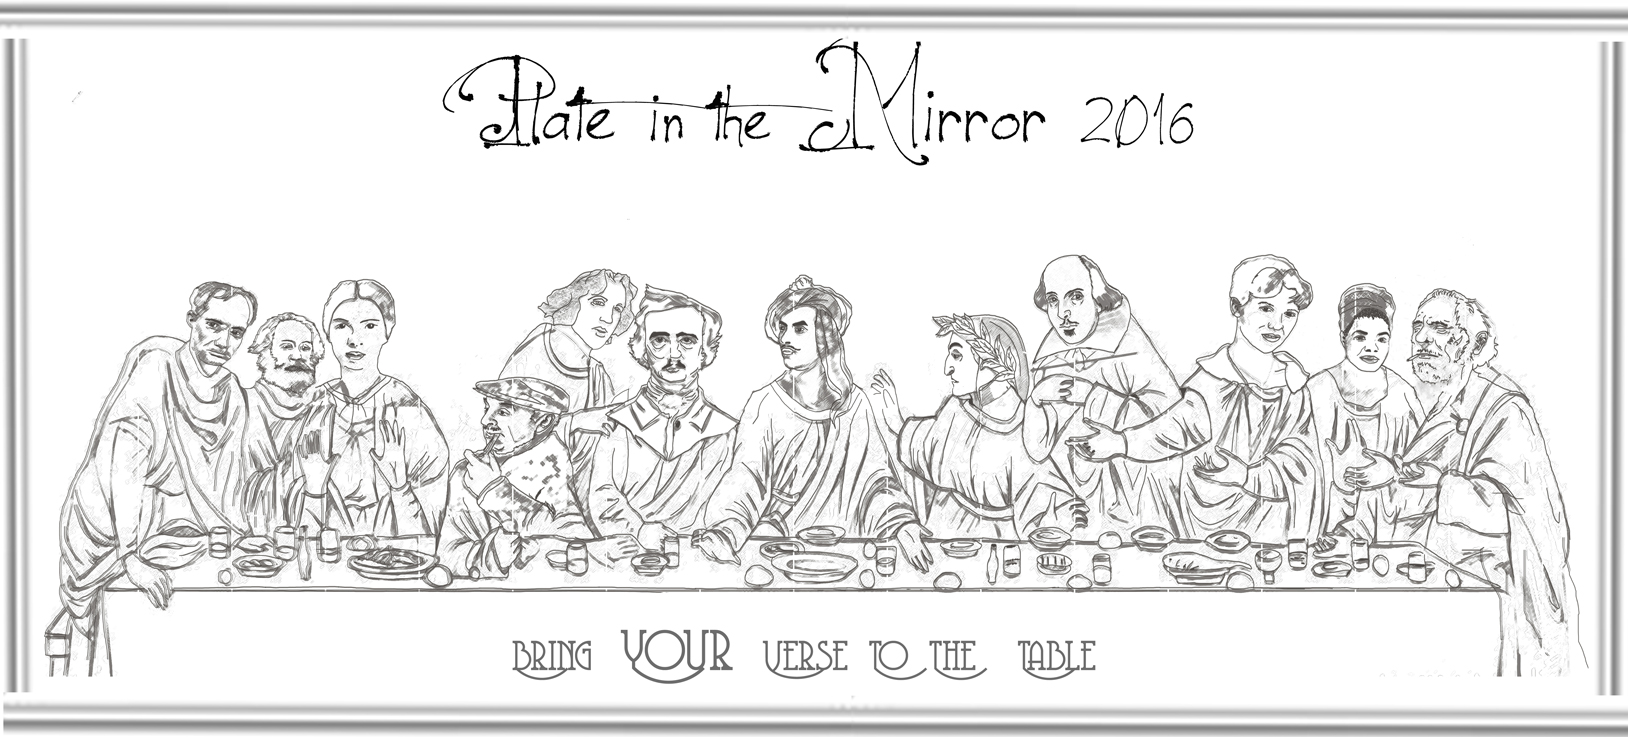 Plate in the Mirror 2016